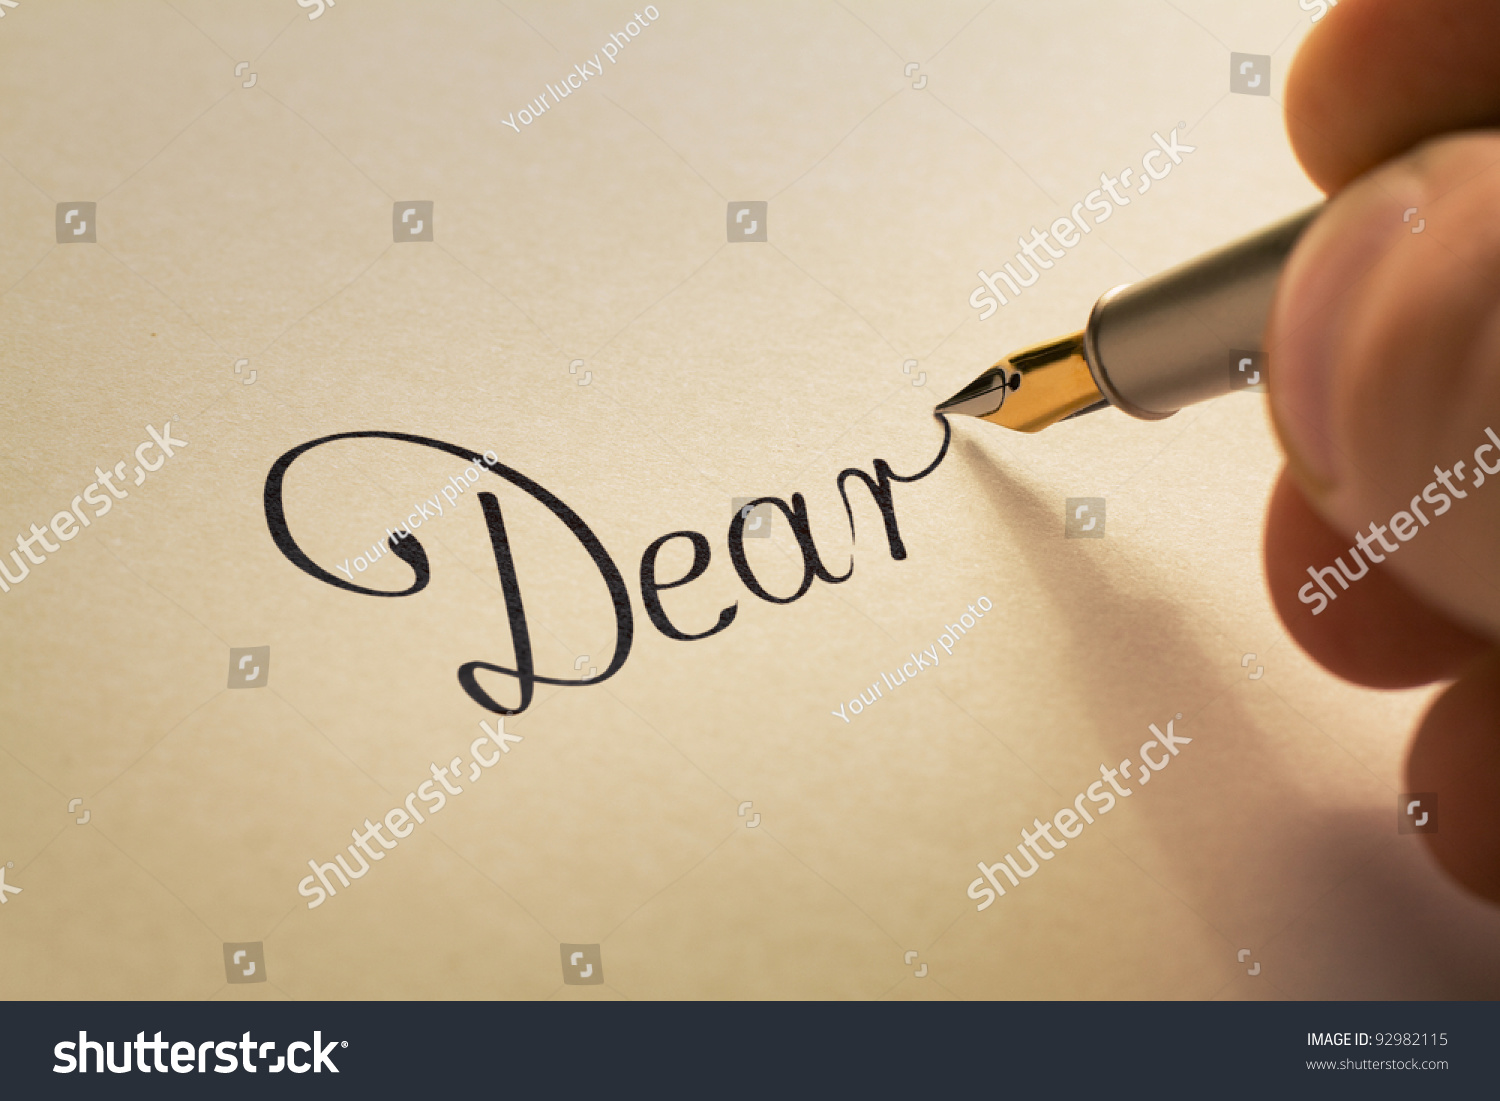 Hand writing calligraphic letter starting dear stock photo royalty hand is writing calligraphic letter starting with dear using old pen on yellow paper thecheapjerseys Image collections